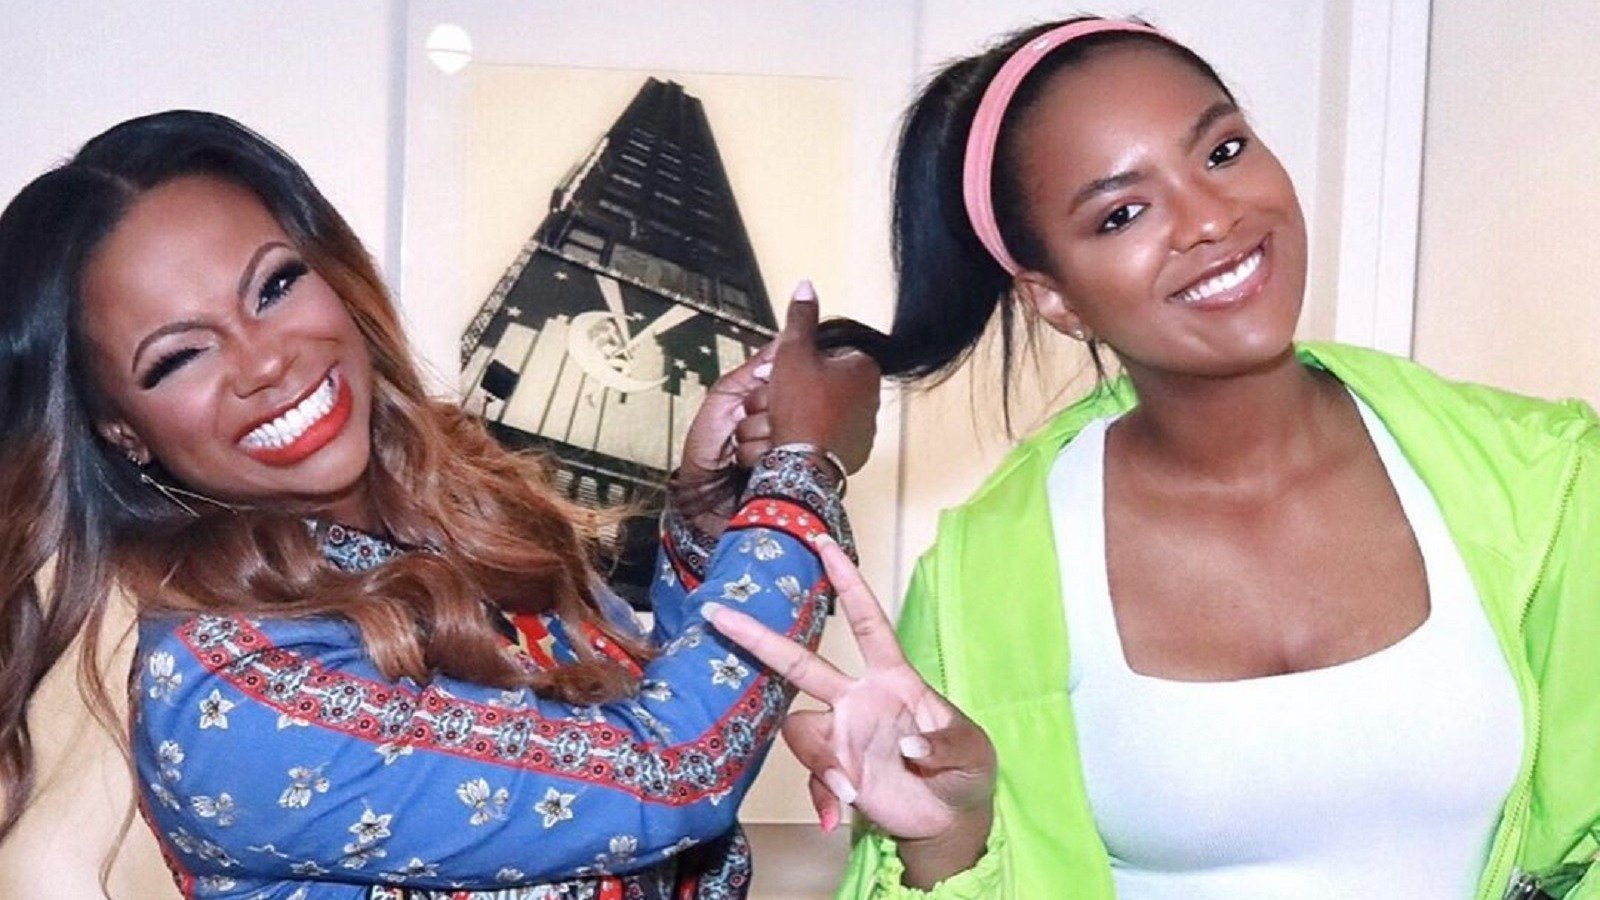 Kandi Burruss Shares A Life Update On YouTube – Check Her Out Cooking With Riley Burruss And More